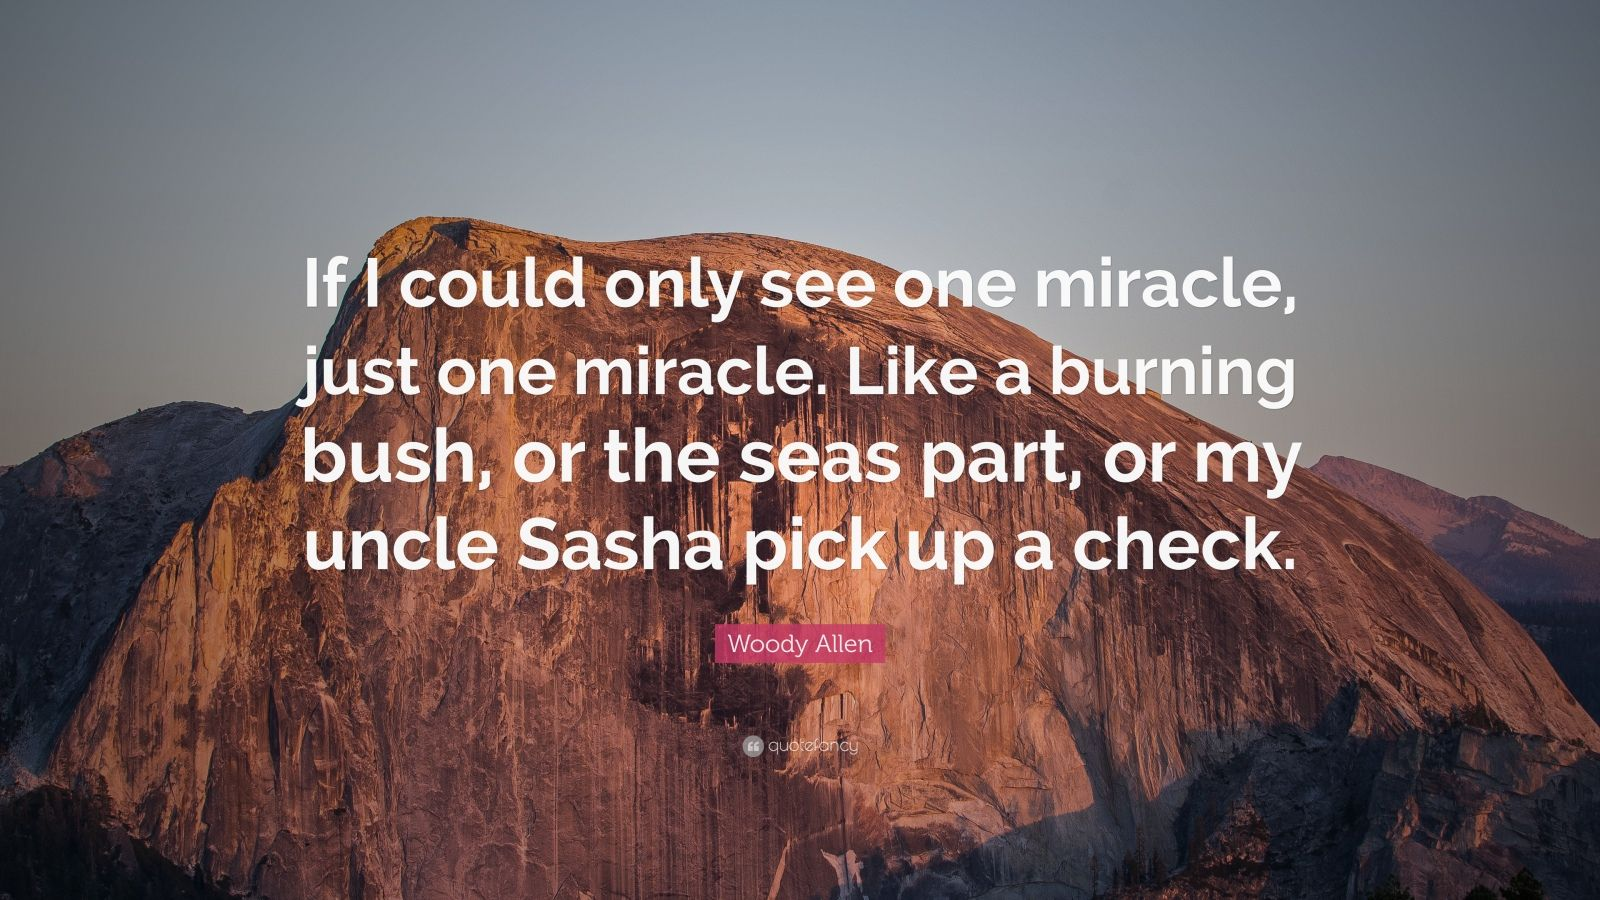 """Woody Allen Quote: """"If I could only see one miracle, just one miracle. Like a burning bush, or the seas part, or my uncle Sasha pick up a check."""""""